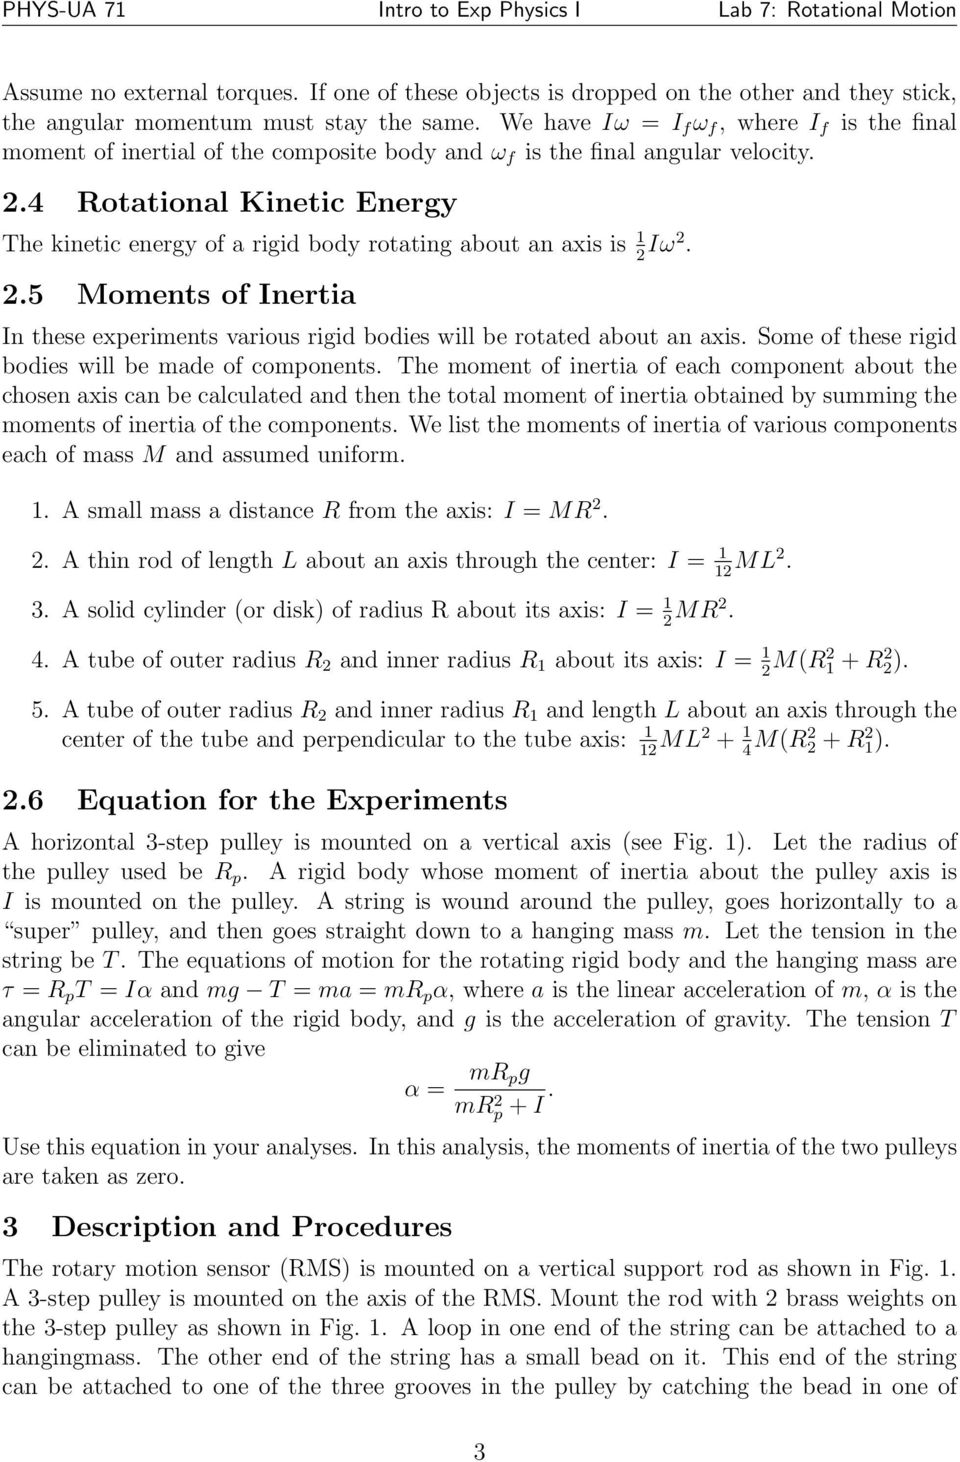 4 Rotational Kinetic Energy The kinetic energy of a rigid body rotating about an axis is 1 2 Iω2. 2.5 Moments of Inertia In these experiments various rigid bodies will be rotated about an axis.